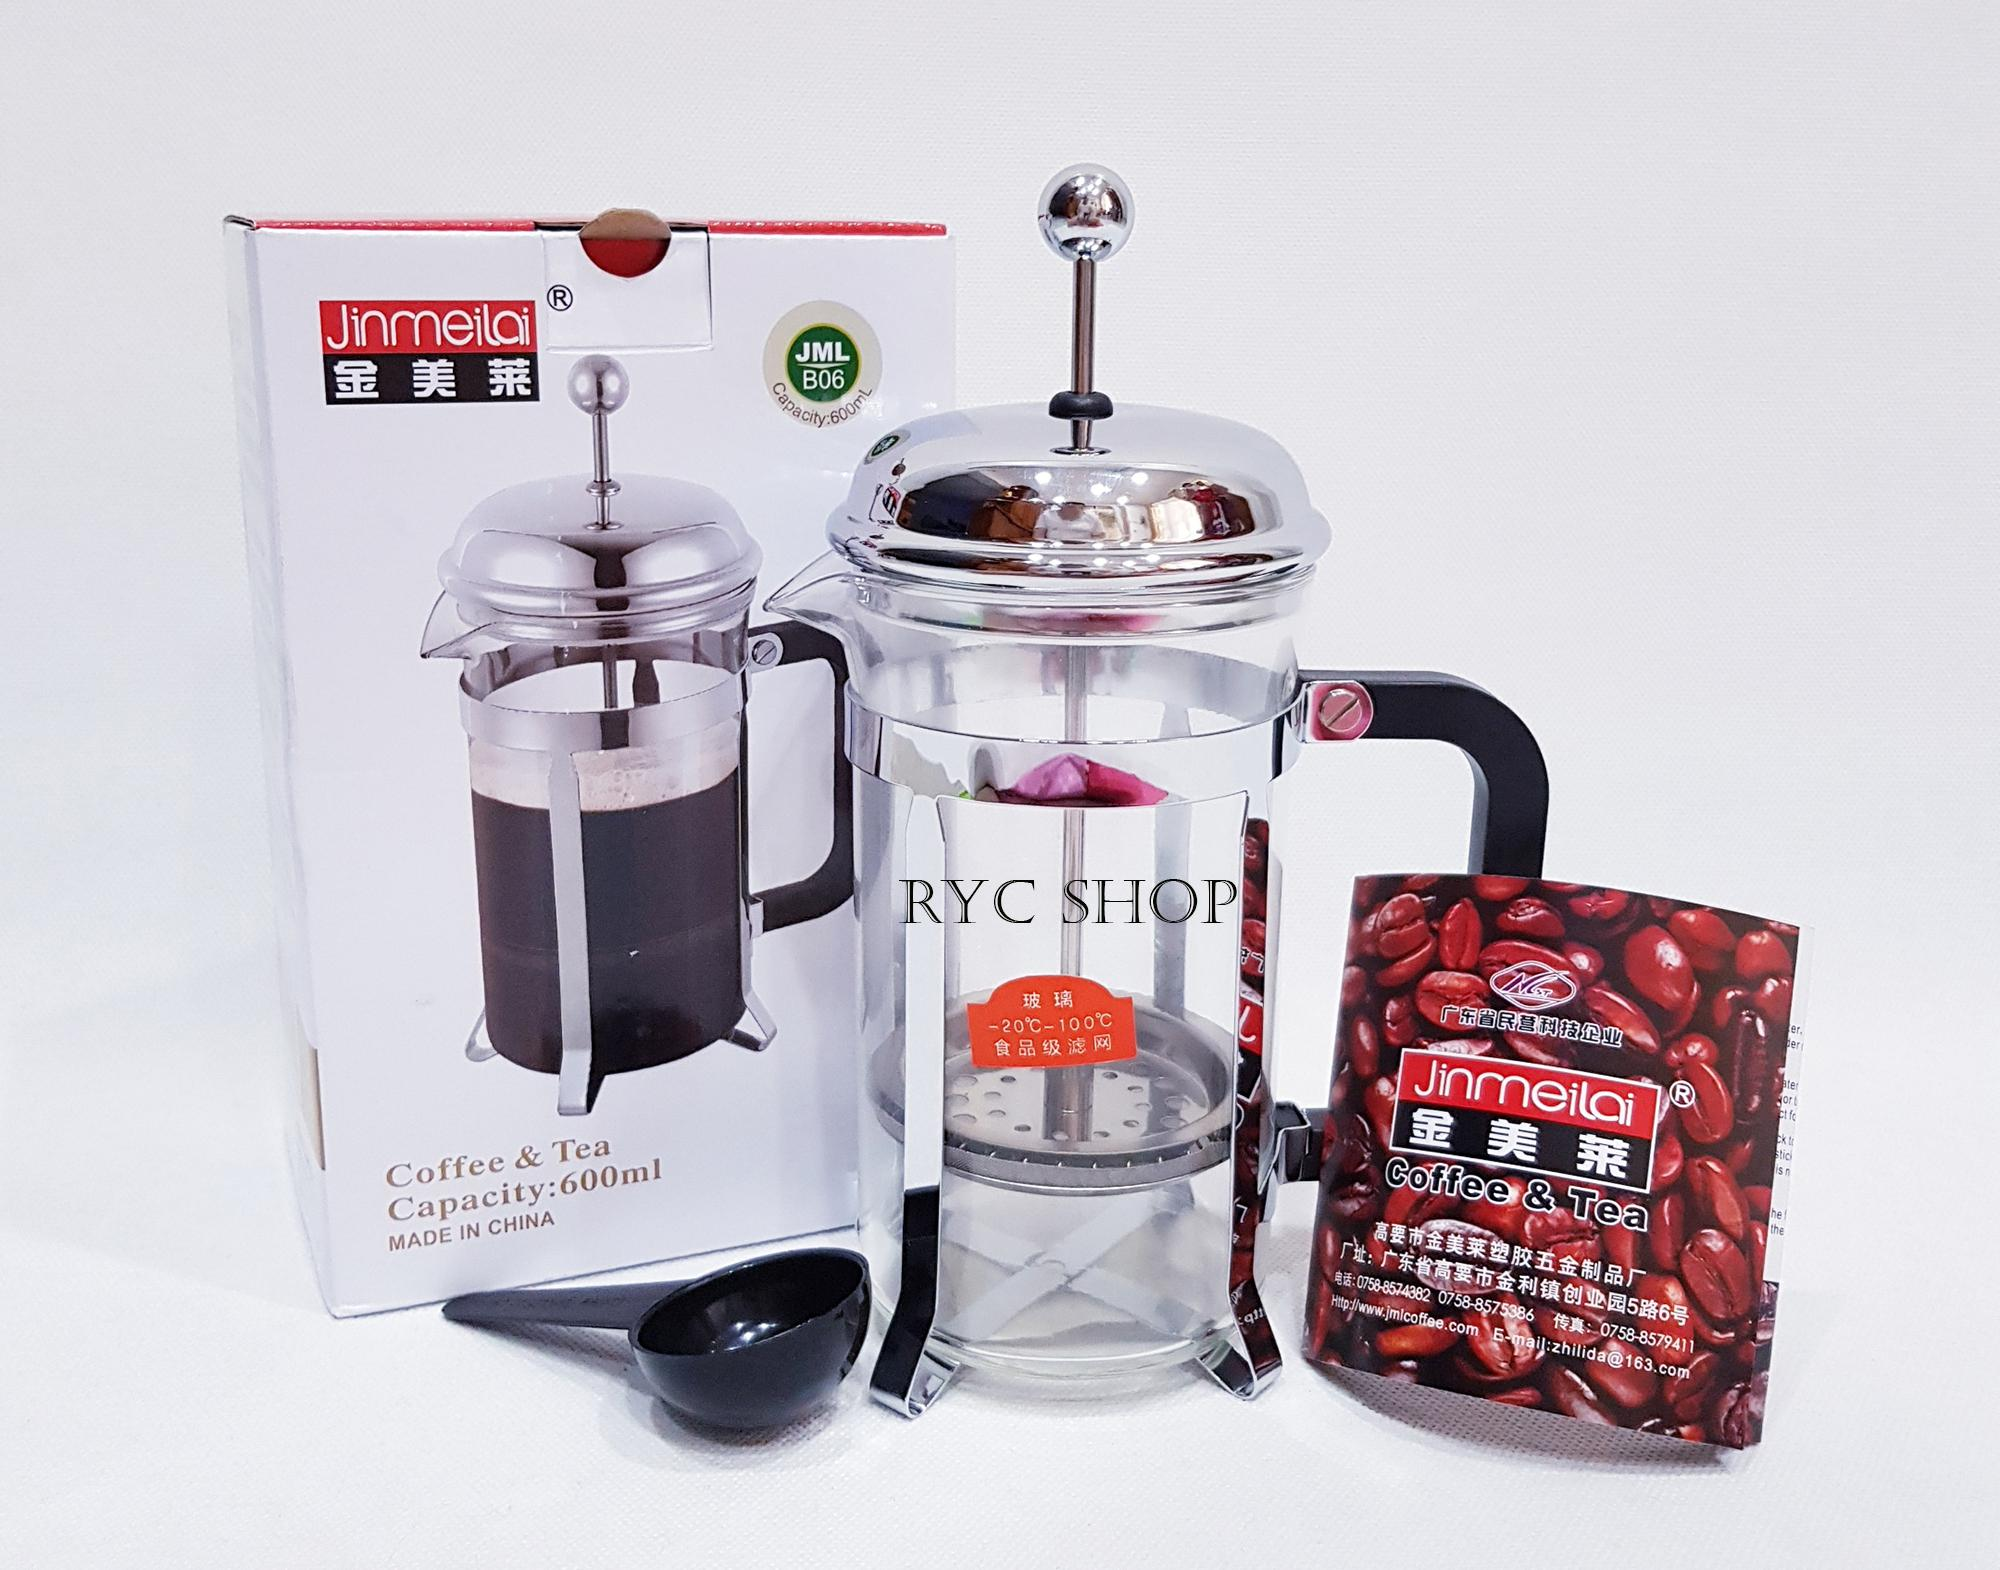 FRENCH PRESS 600 ML / Coffee Plunger / Coffee Maker 600 ml for 3-6 Cups TERMURAH